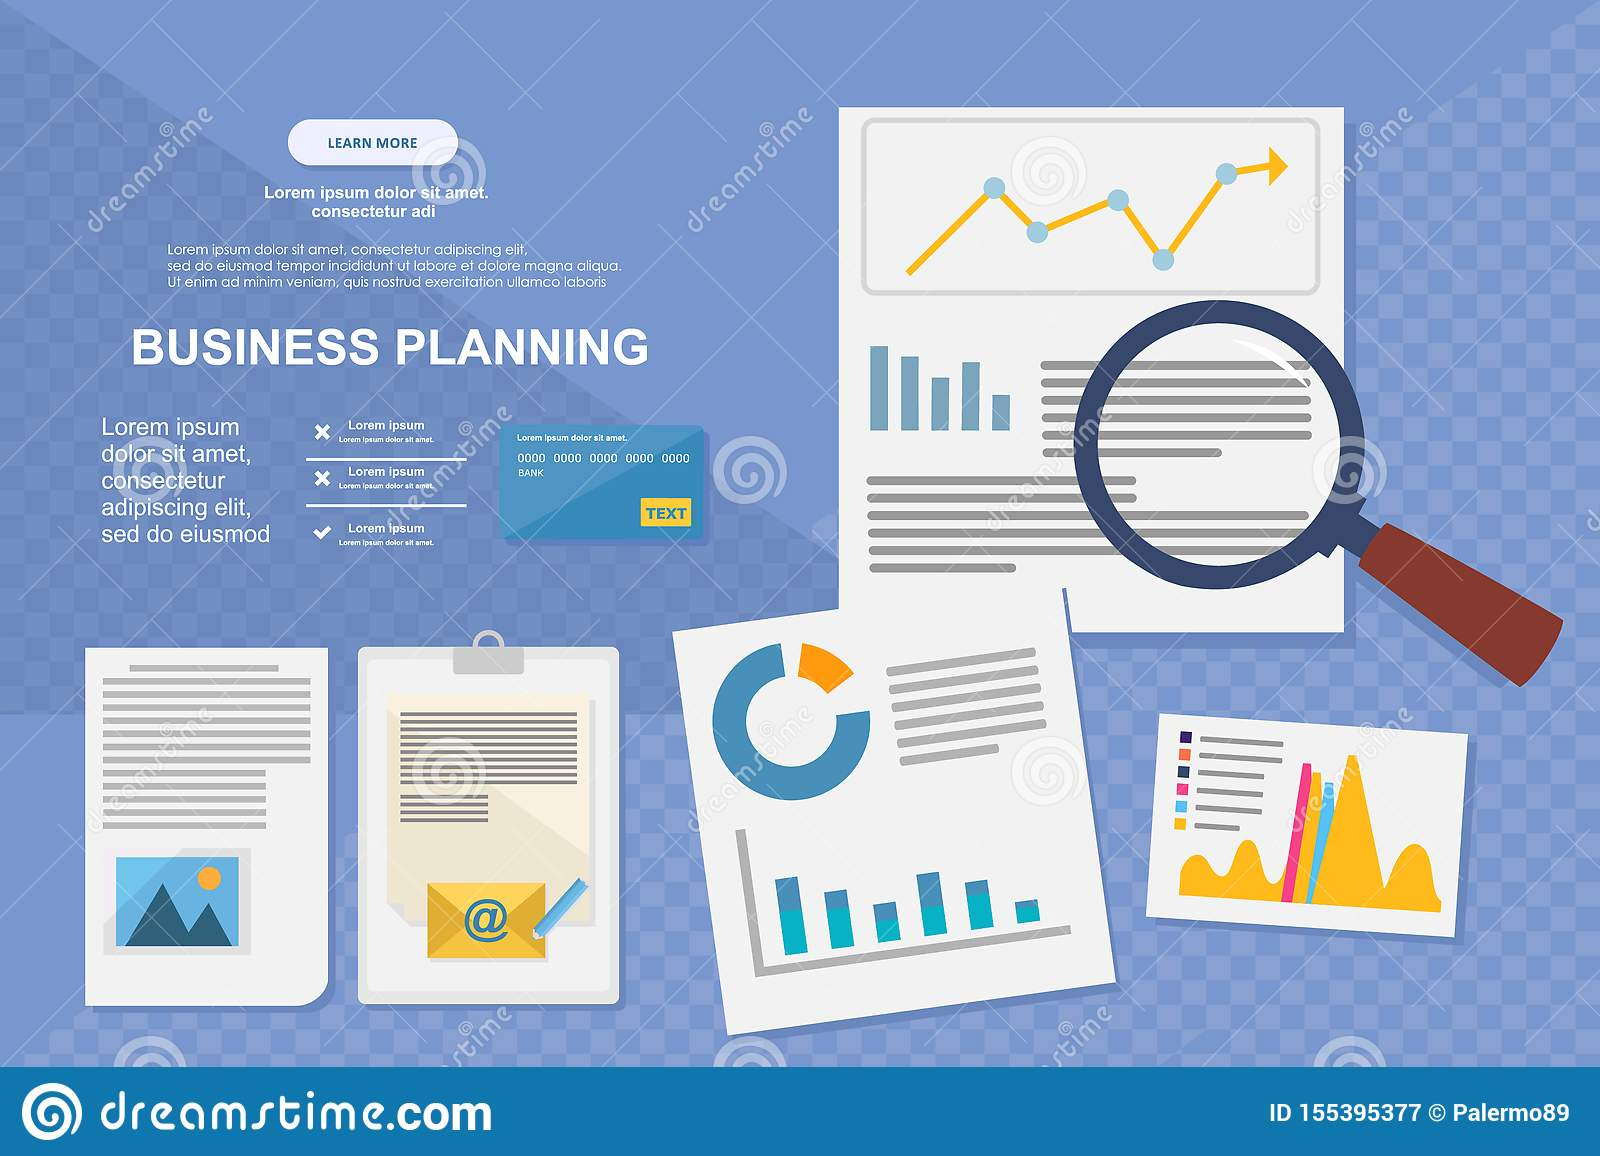 Concept for business analysis, market research, data analysis